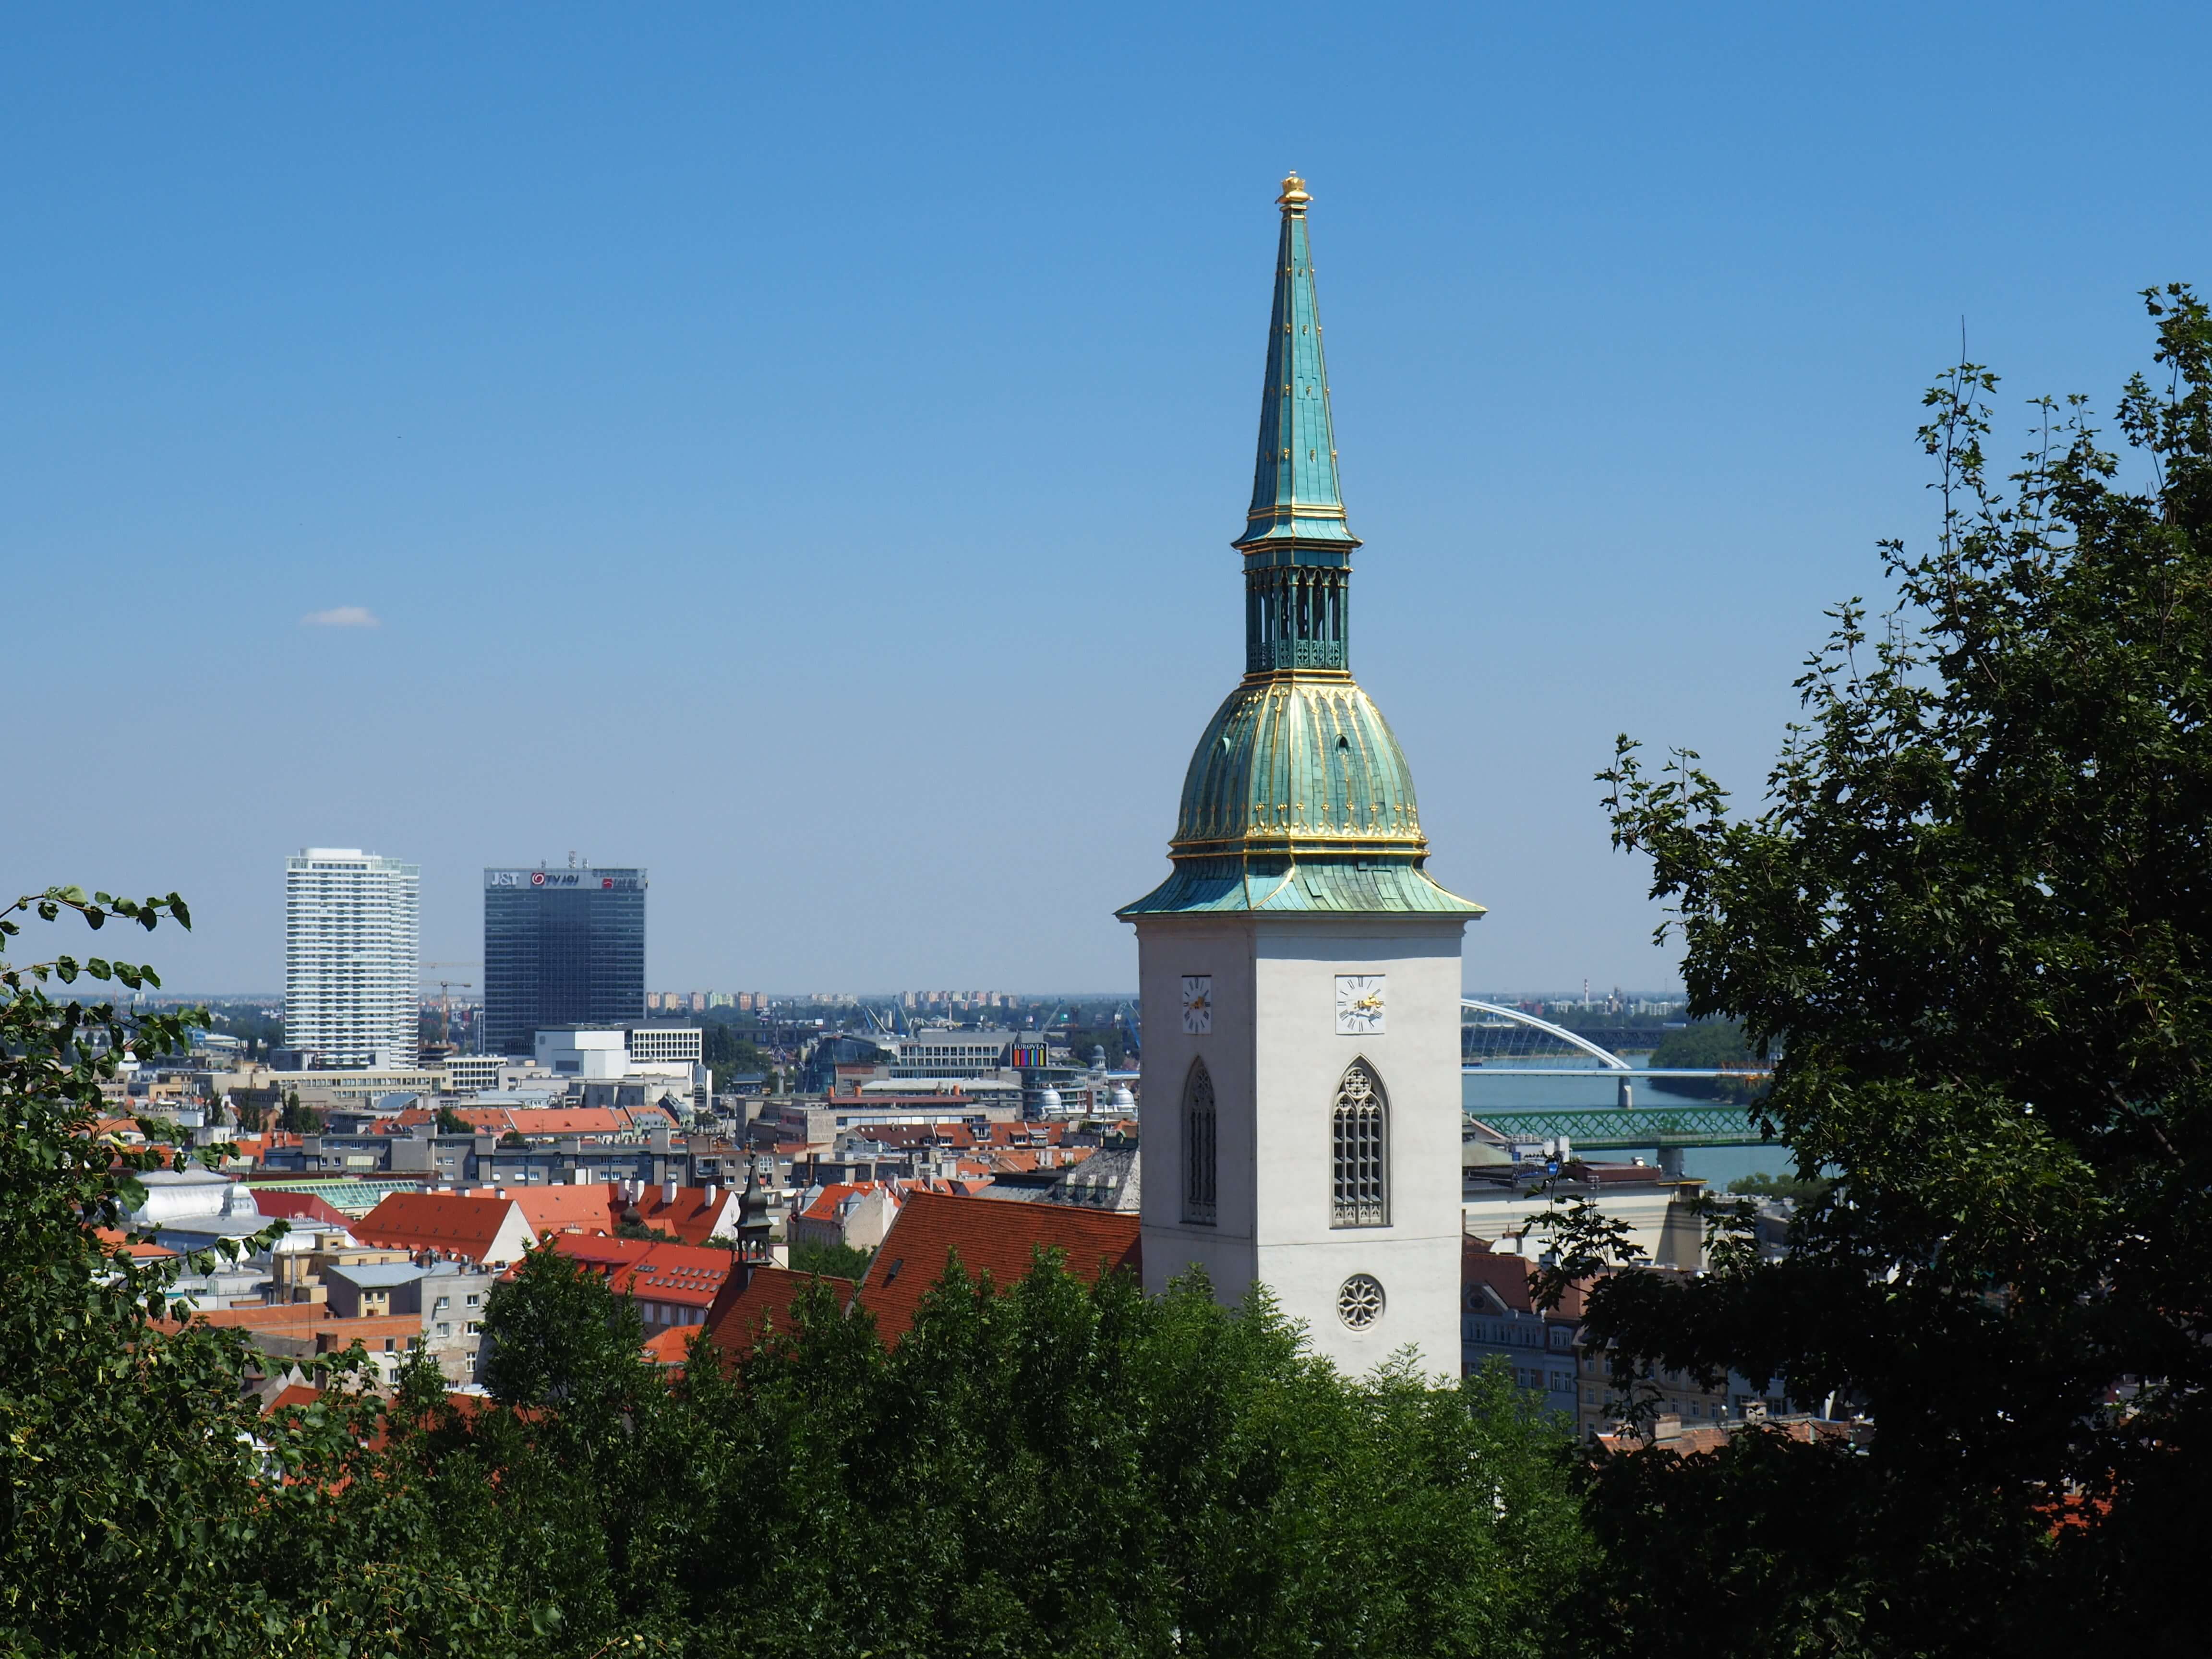 The steeple of St. Martin's Cathedral as seen from Bratislava Castle.